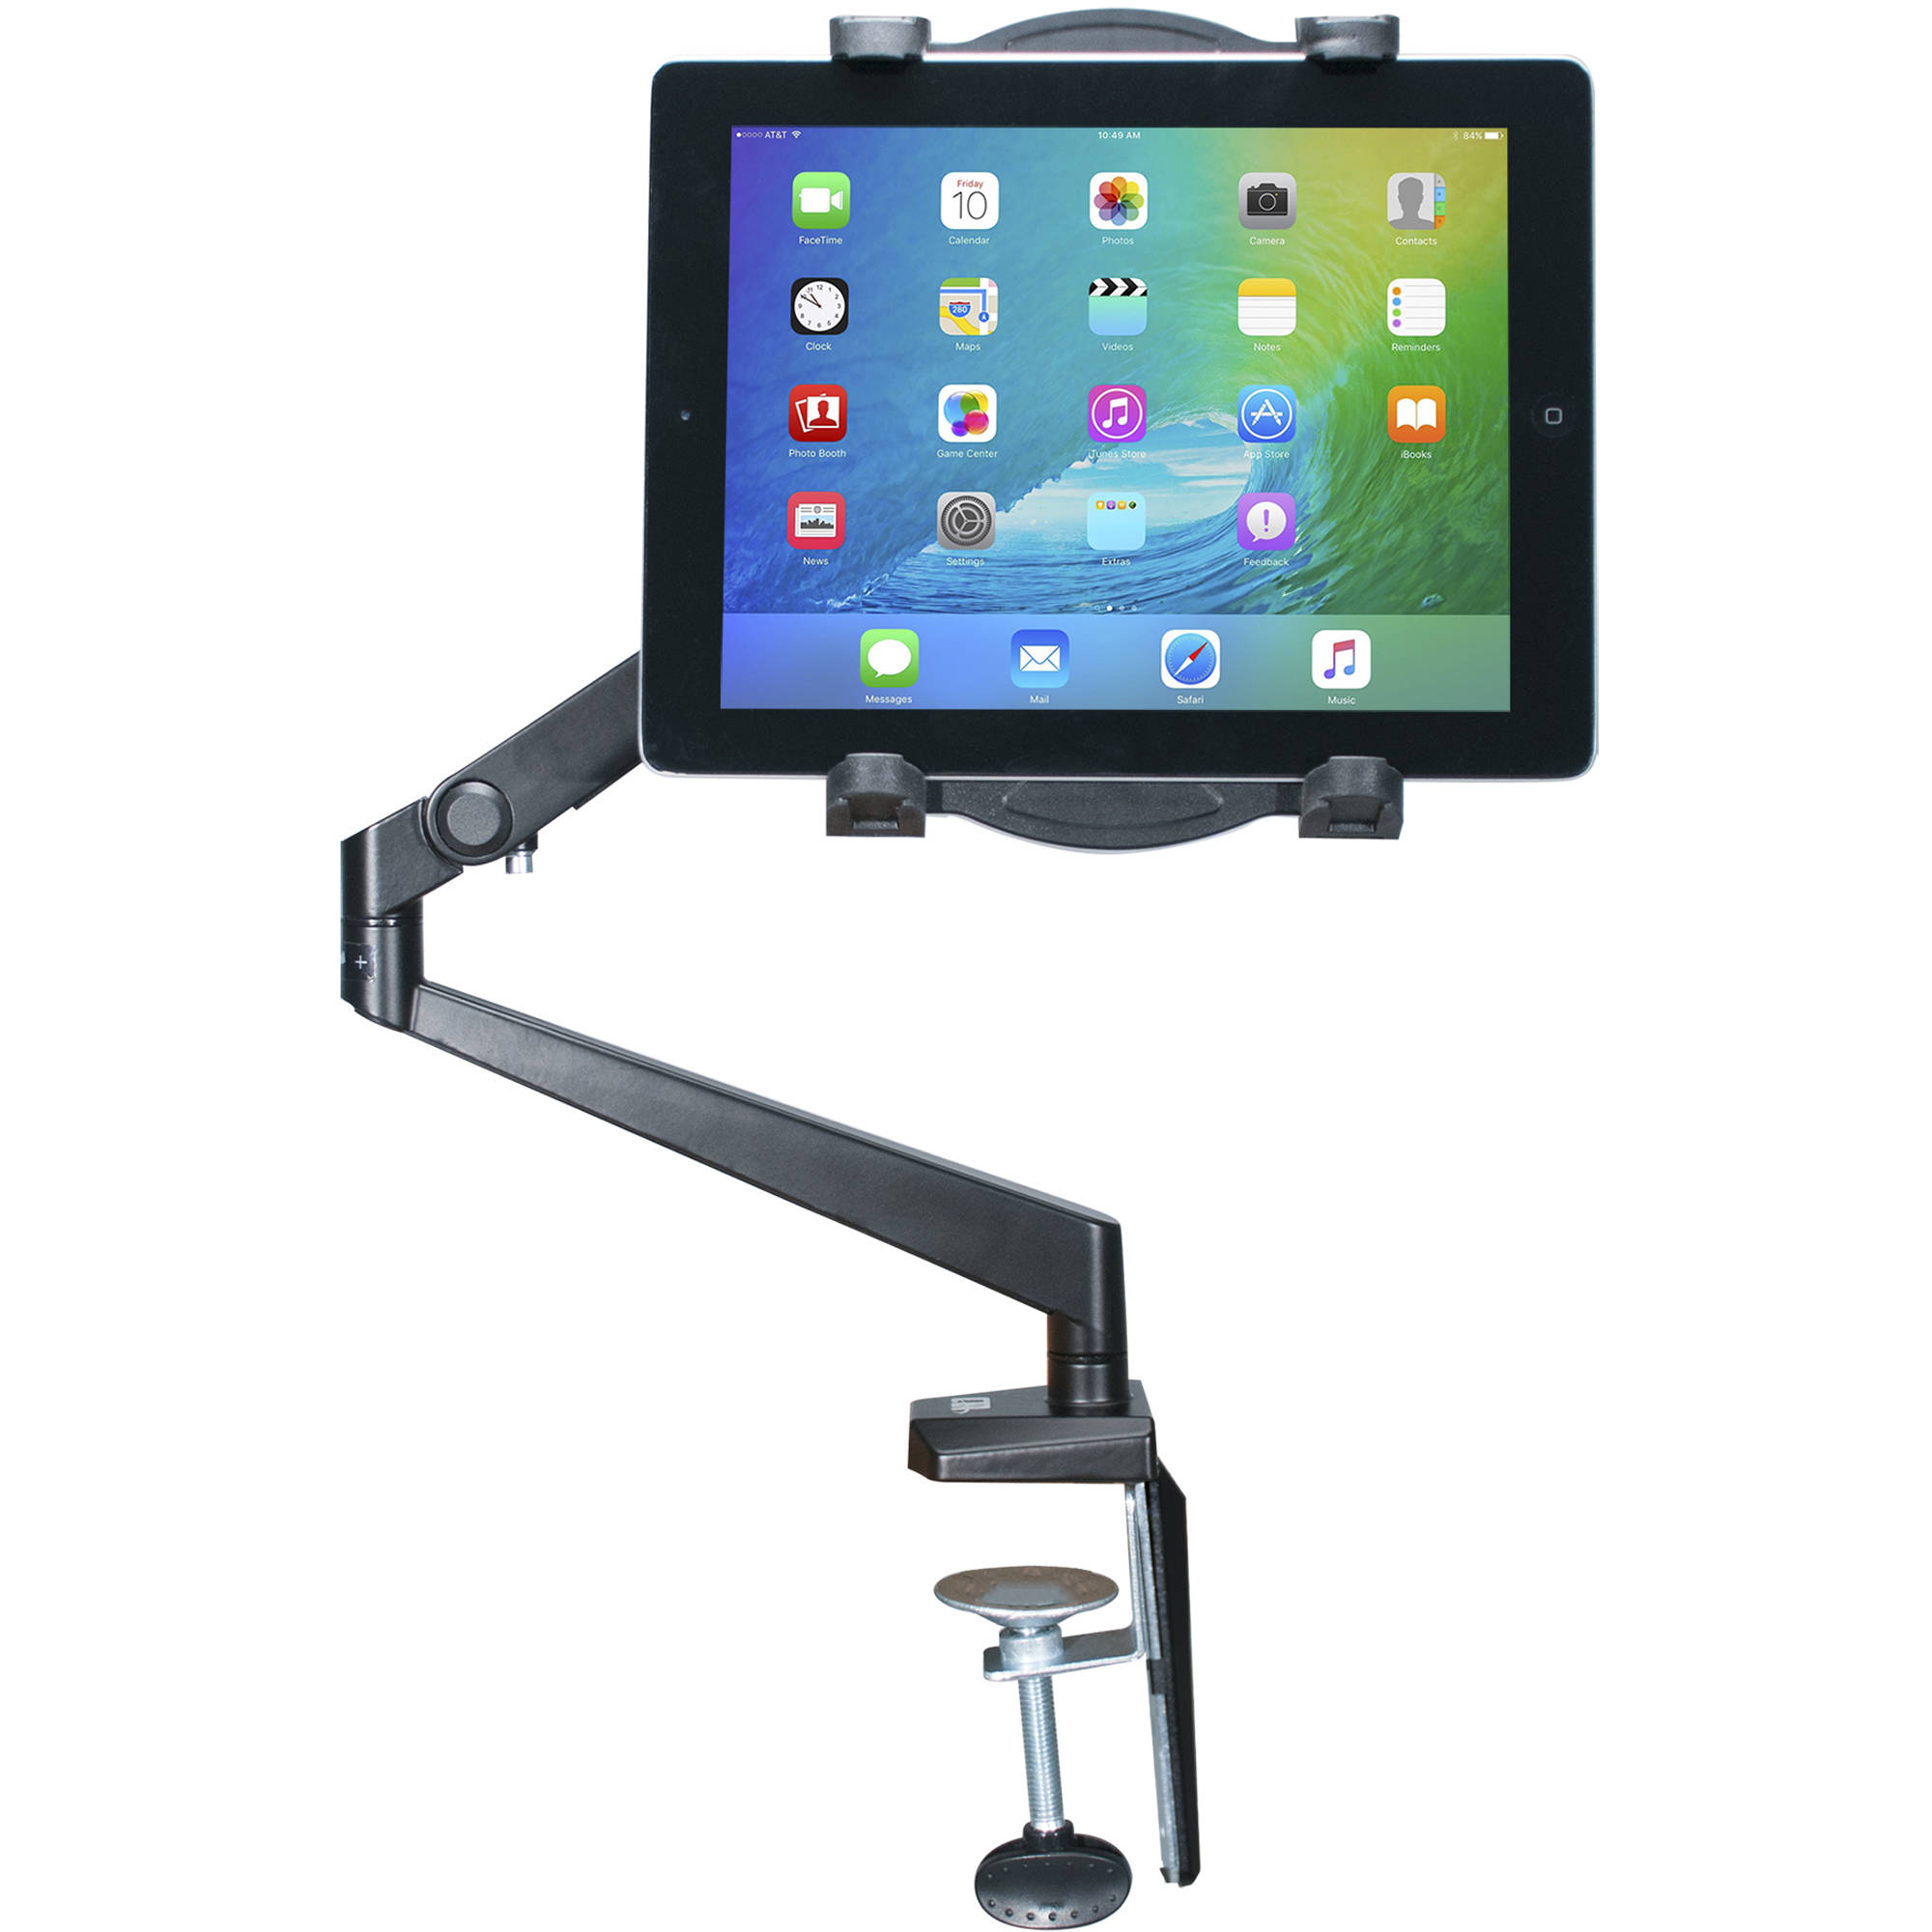 Cta Digital Tabletop Arm Mount For Tablets Pad Tam B Amp H Photo